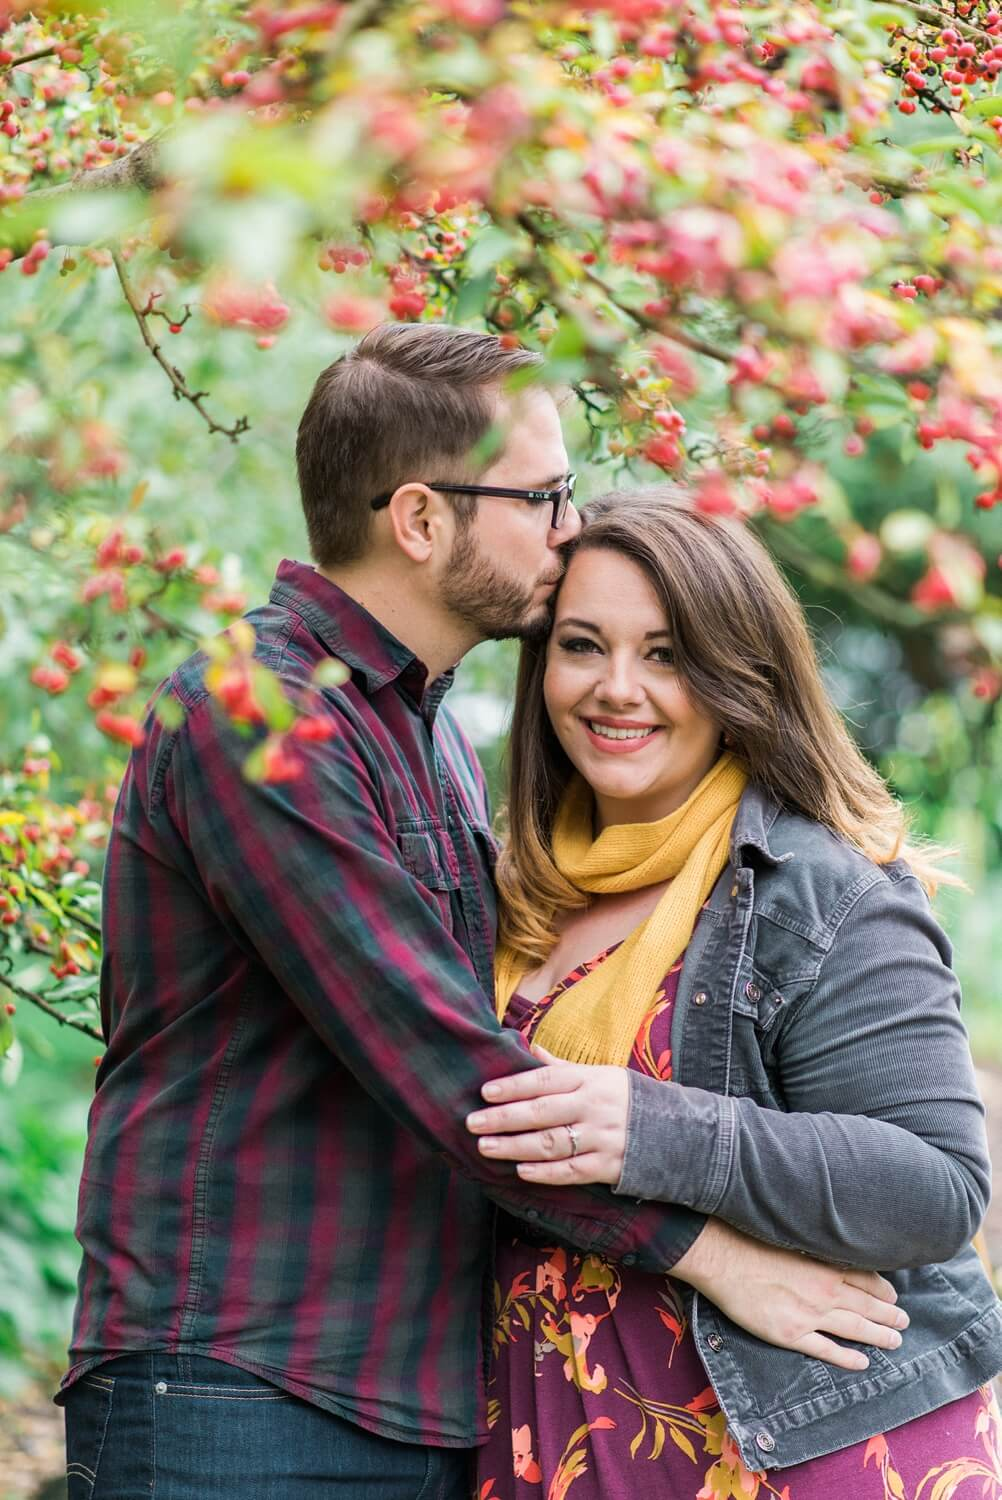 portland-engagement-photography-mcmenamins-edgefield-shelley-marie-photo-012_cr.jpg